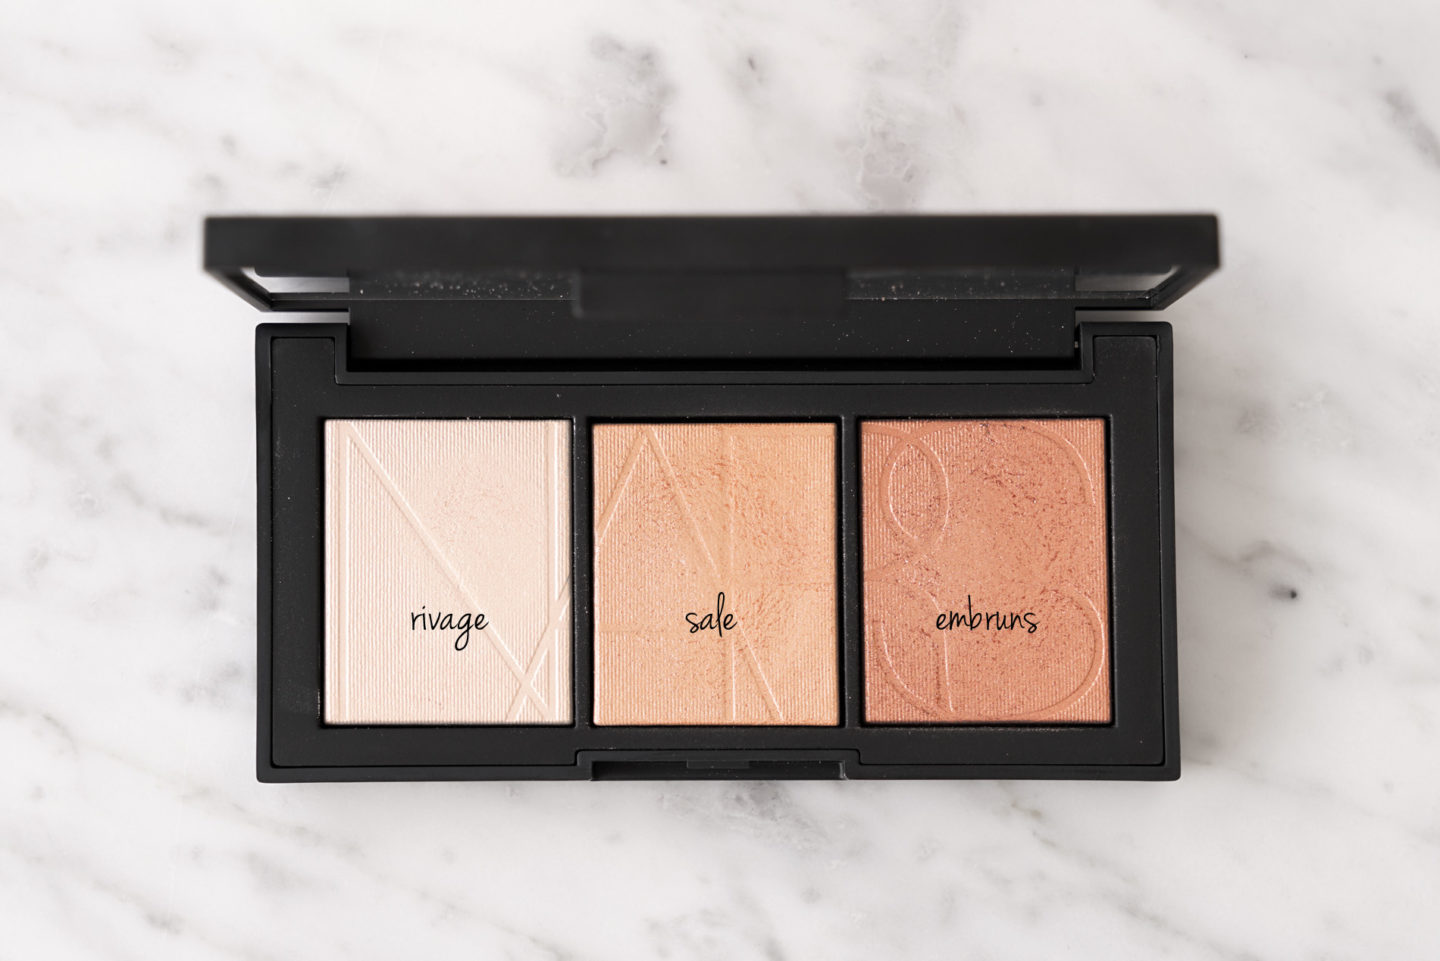 NARS Banc de Sable highlighting palette | The Beauty Look Book